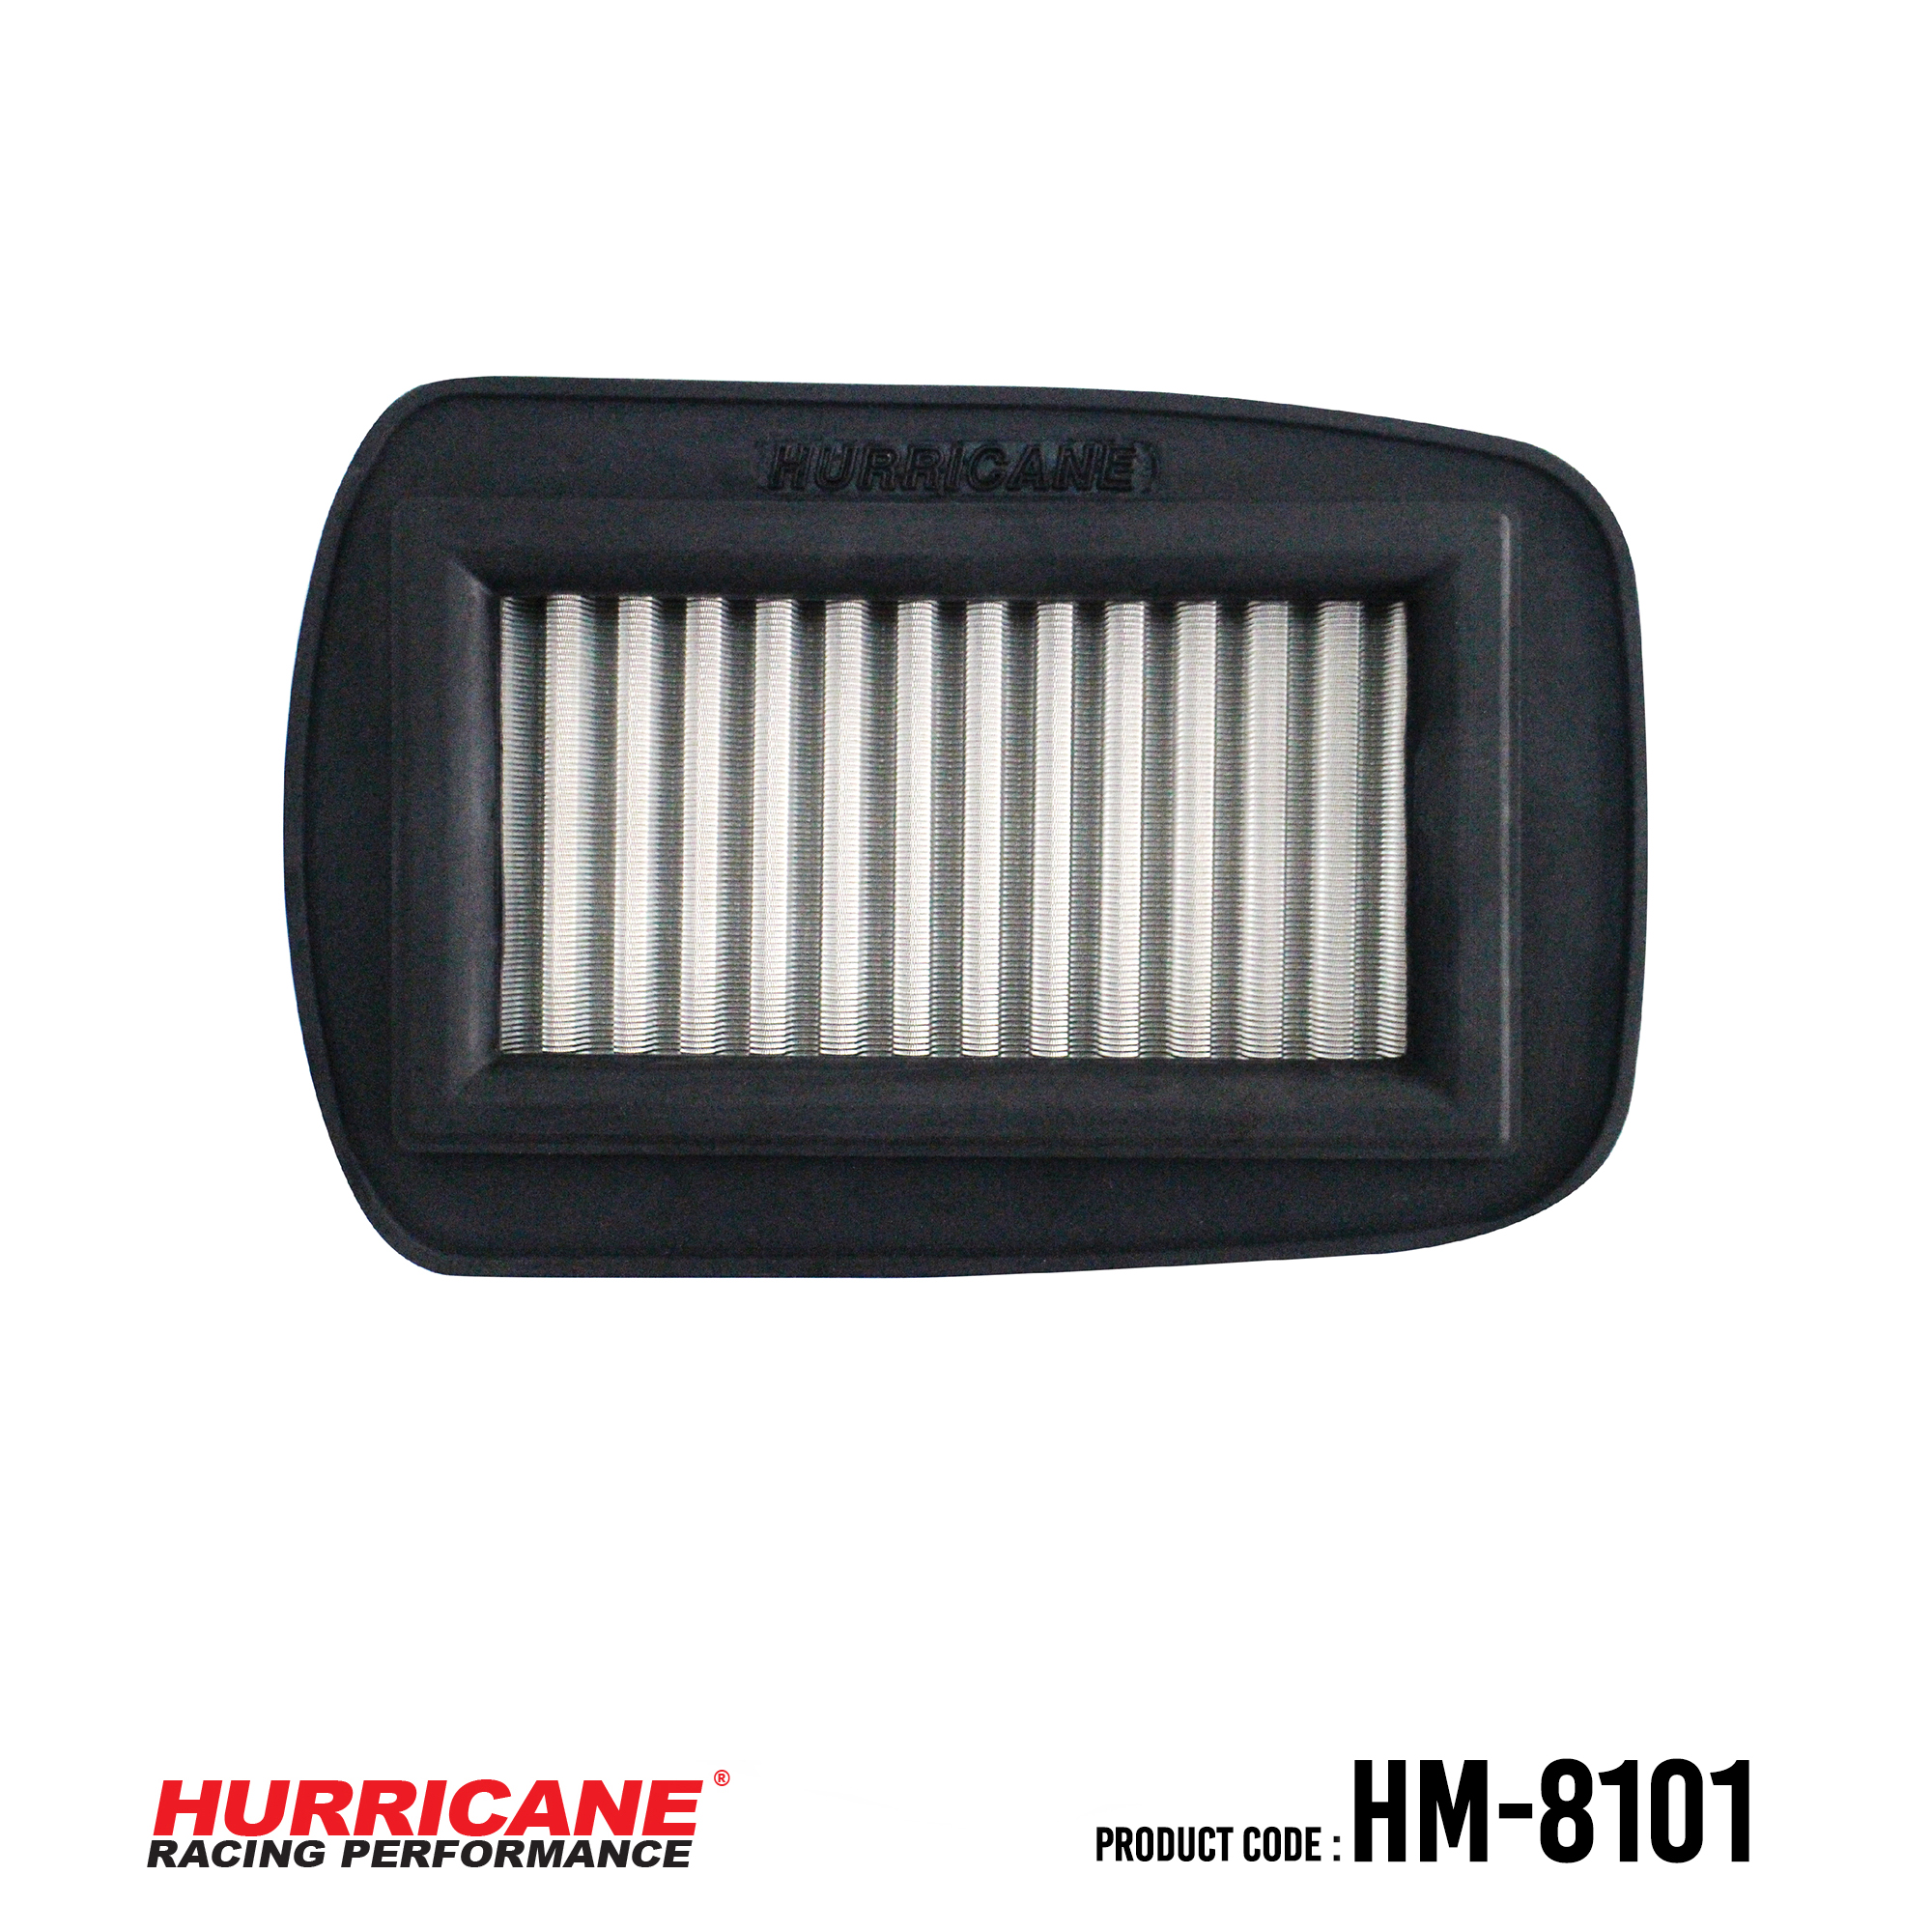 HURRICANE STAINLESS STEEL AIR FILTER FOR HM-8101 Paje Yamaha